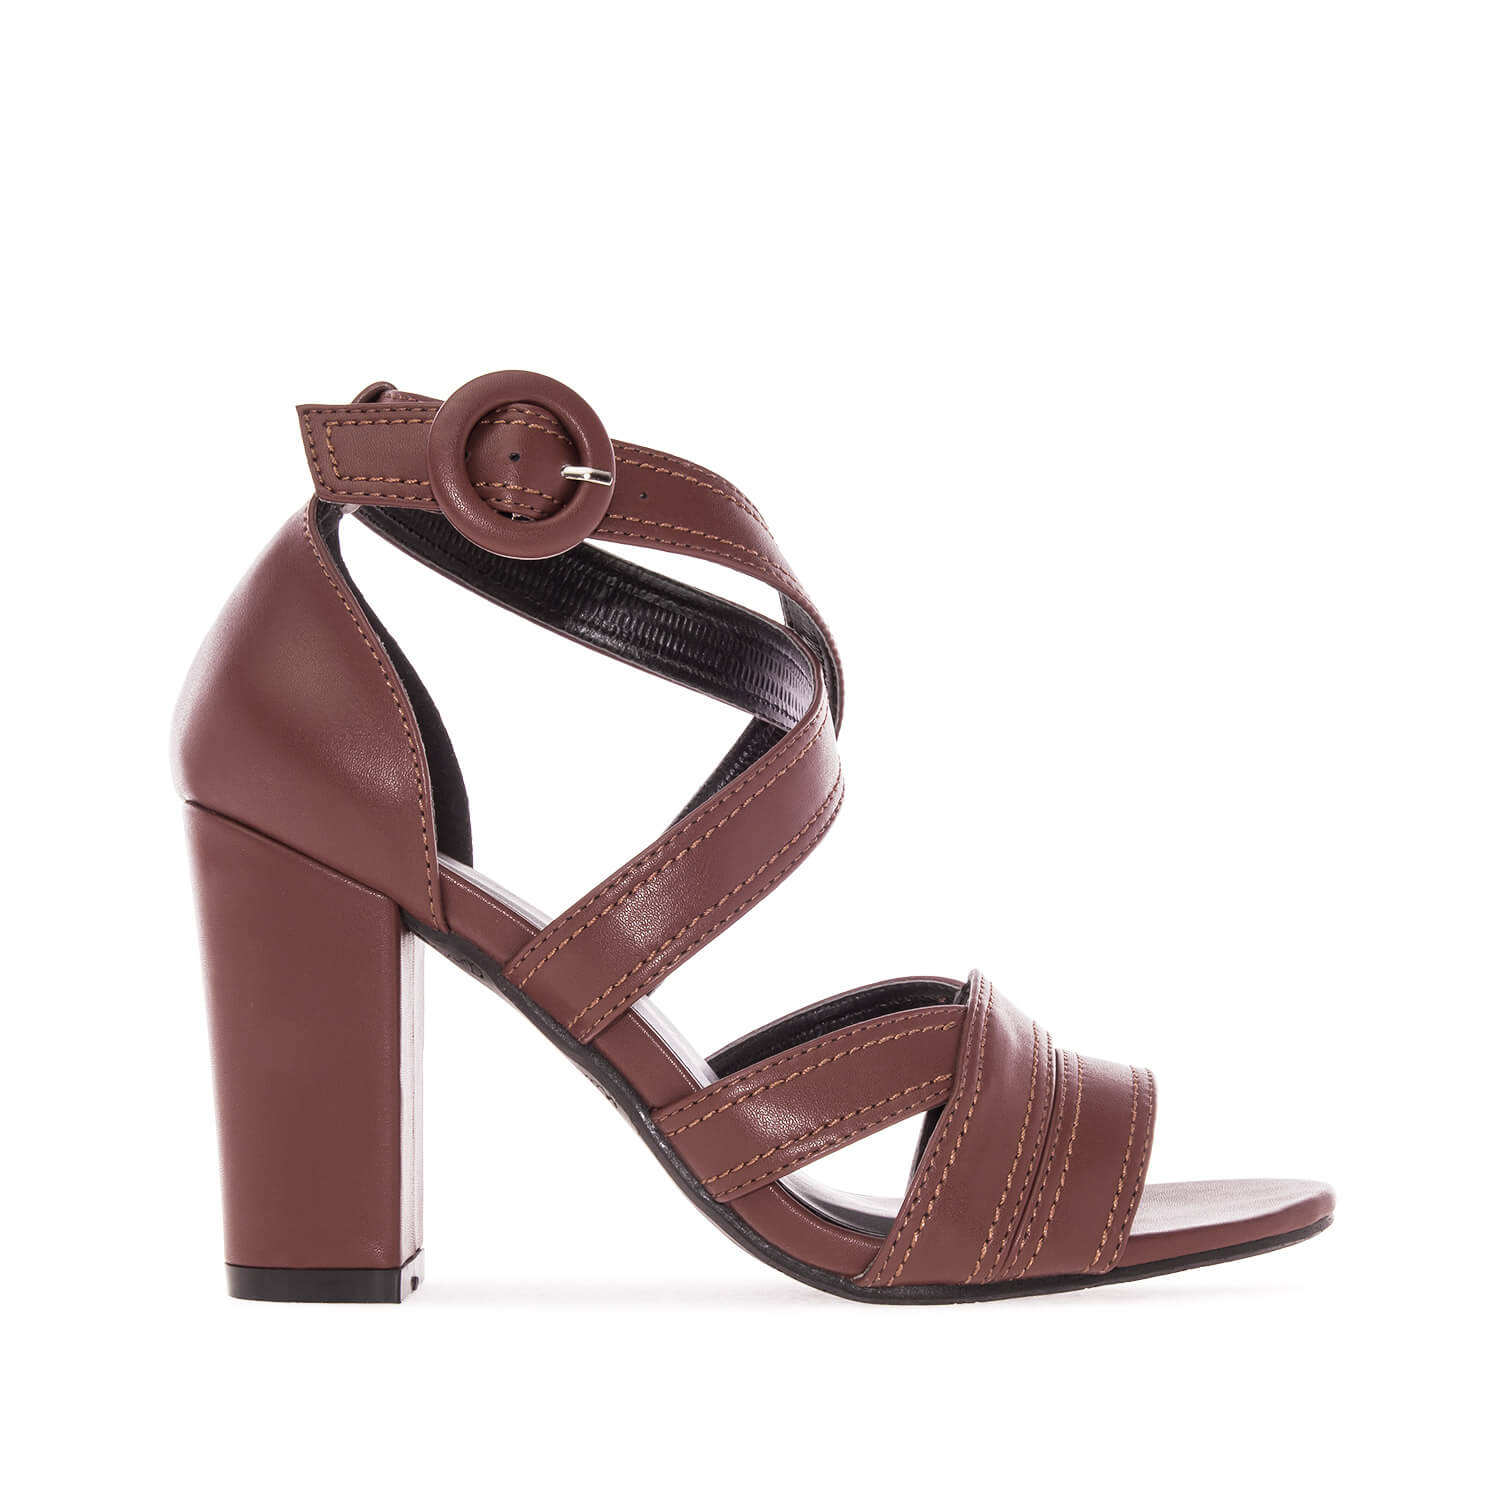 Sandalias en Soft color Marron.